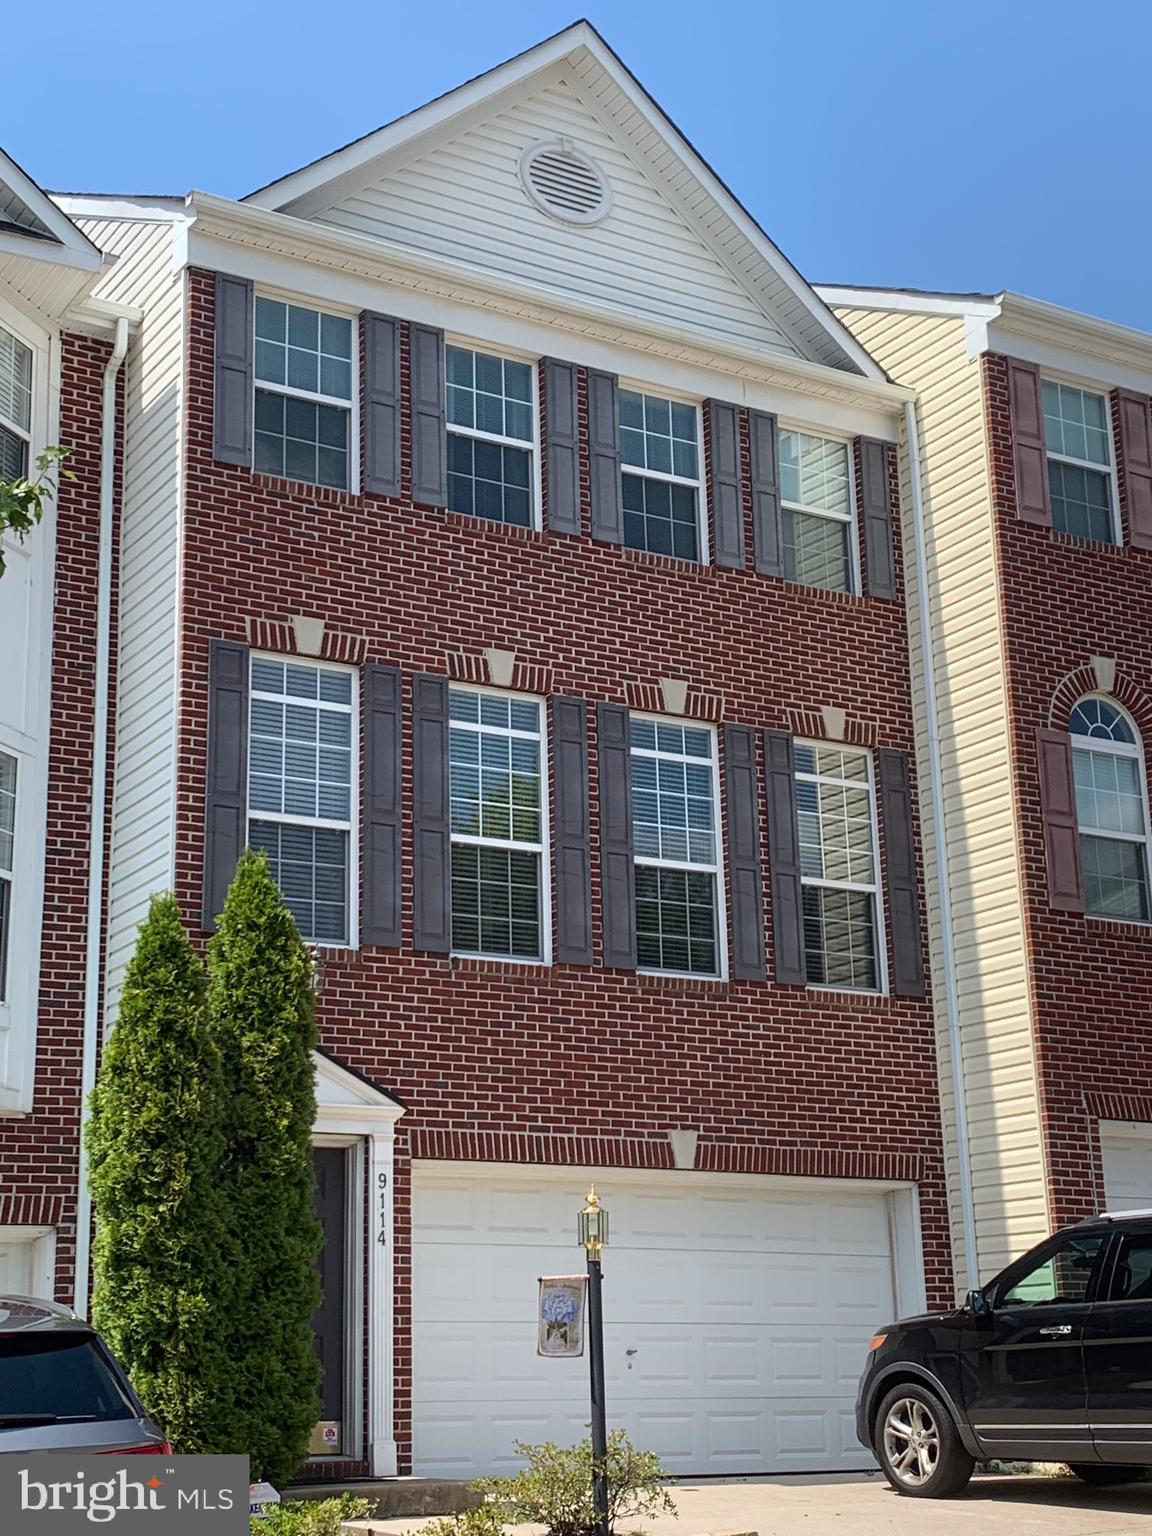 Beautiful & bright, 3 Bedroom, 3.5 Bath, Brick FrontTownhome in South County School Pyramid! Hardwood floors on main level. New Hardwood stairs installed in 2018. New Upper level wood style laminate flooring installed in 2018. Large Kitchen with newer Stainless Steel Appliances. Master Suite with Tray Ceiling.  Luxury Bath with dual vanities, separate tub and shower. Ceramic Tile in all Baths. HVAC replaced in 2016. Excellent proximity to highways, shopping & restaurants. Neighoborhood has Outdoor Pool, Community Center, Tennis Courts and Sports Courts.